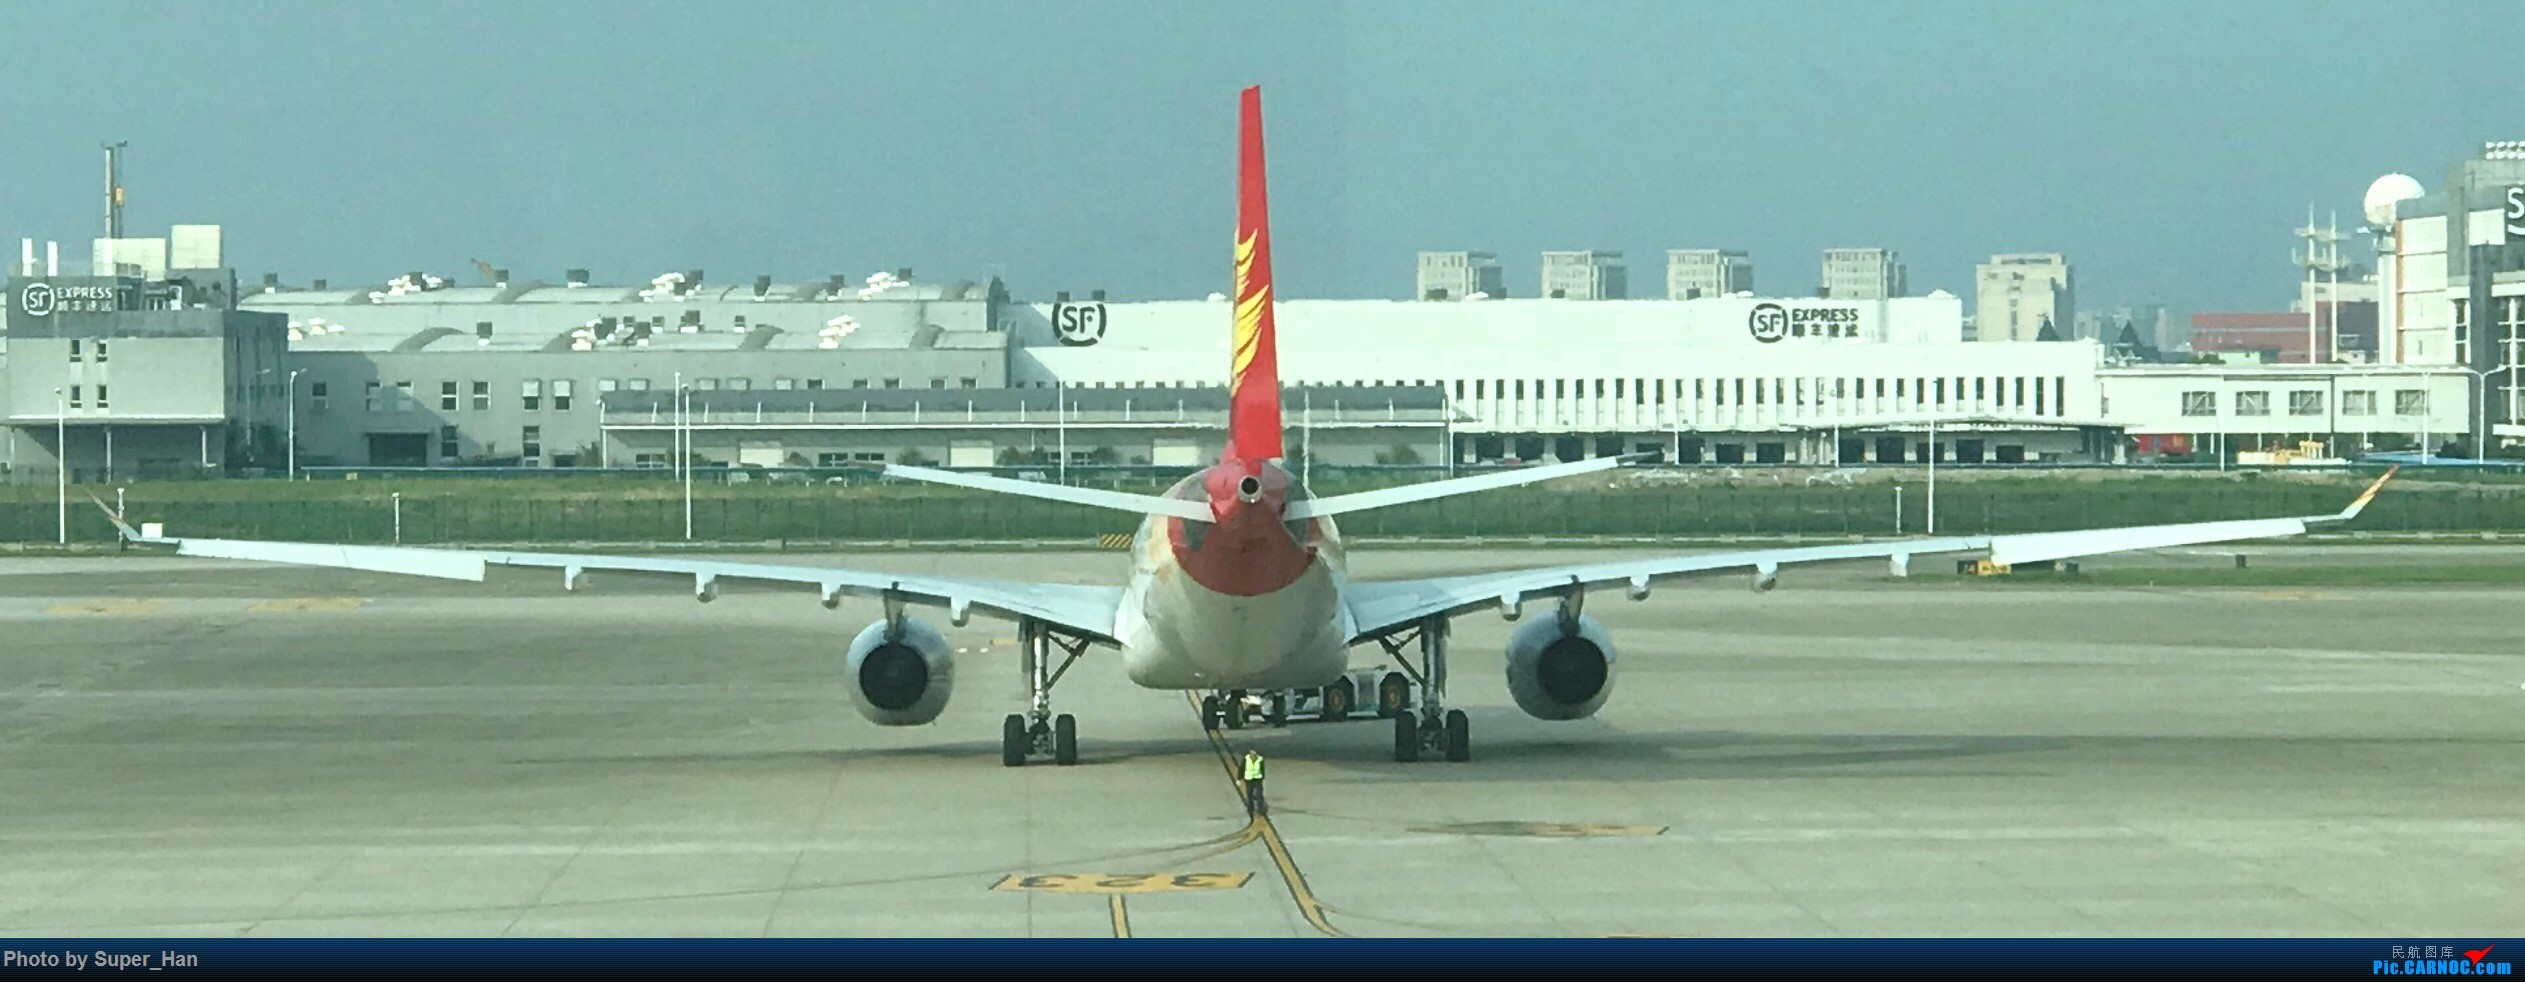 Re:[原创]HGH-SZX CAN-SHA AIRBUS A330-200 B-8549 中国杭州萧山国际机场